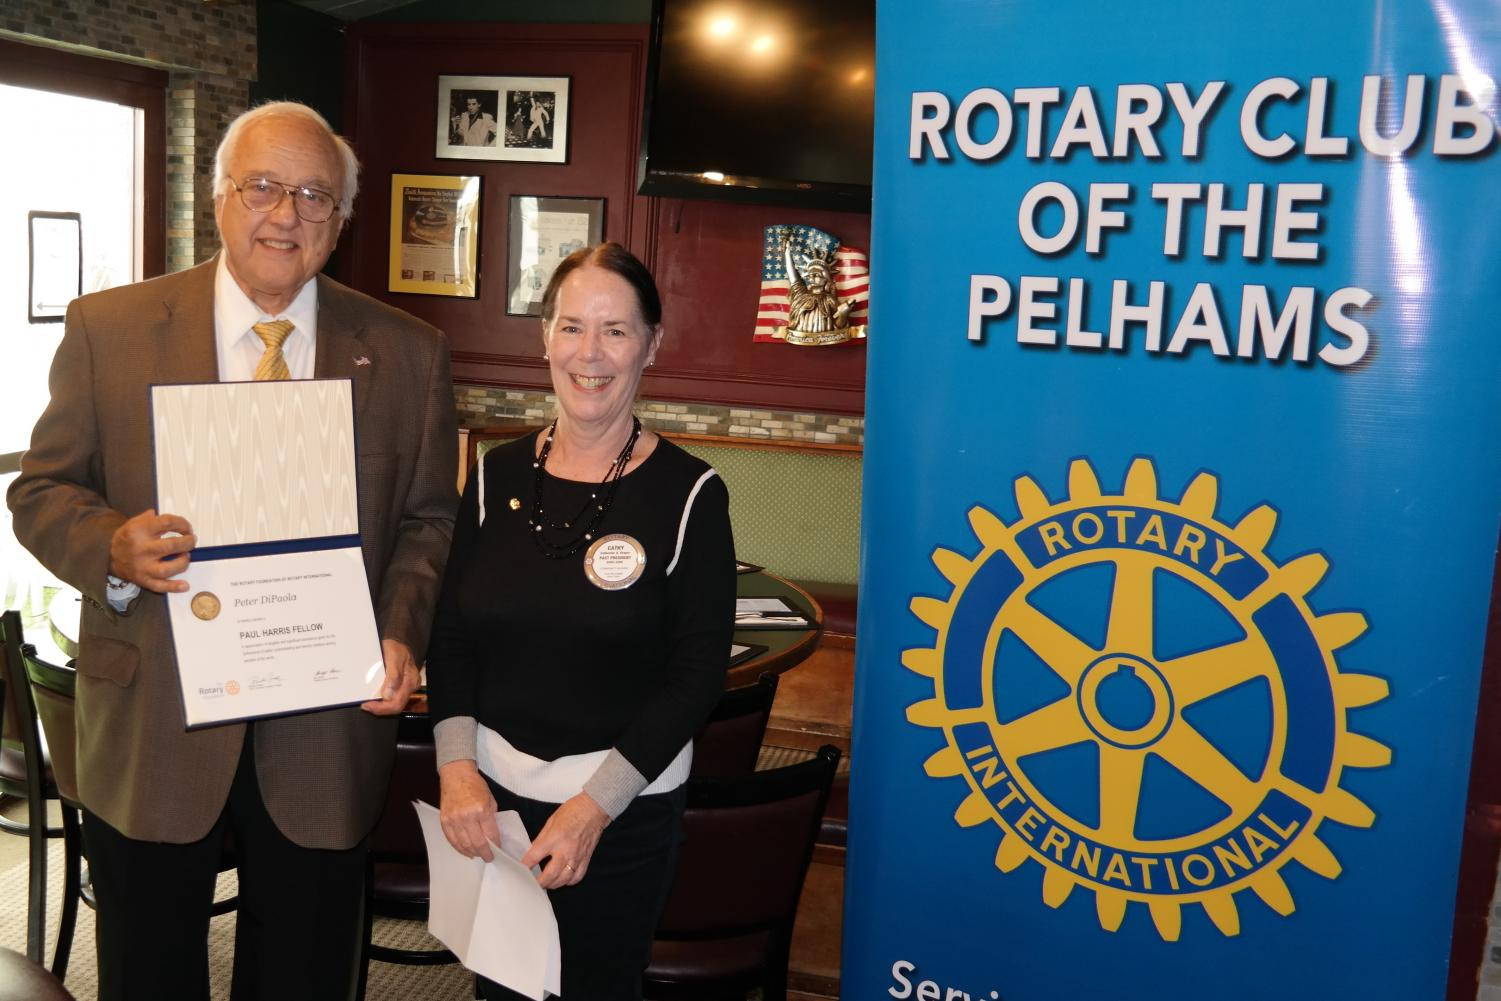 Peter DePaola was presented with a Paul Harris Fellow by former Rotary President Cathy Draper.